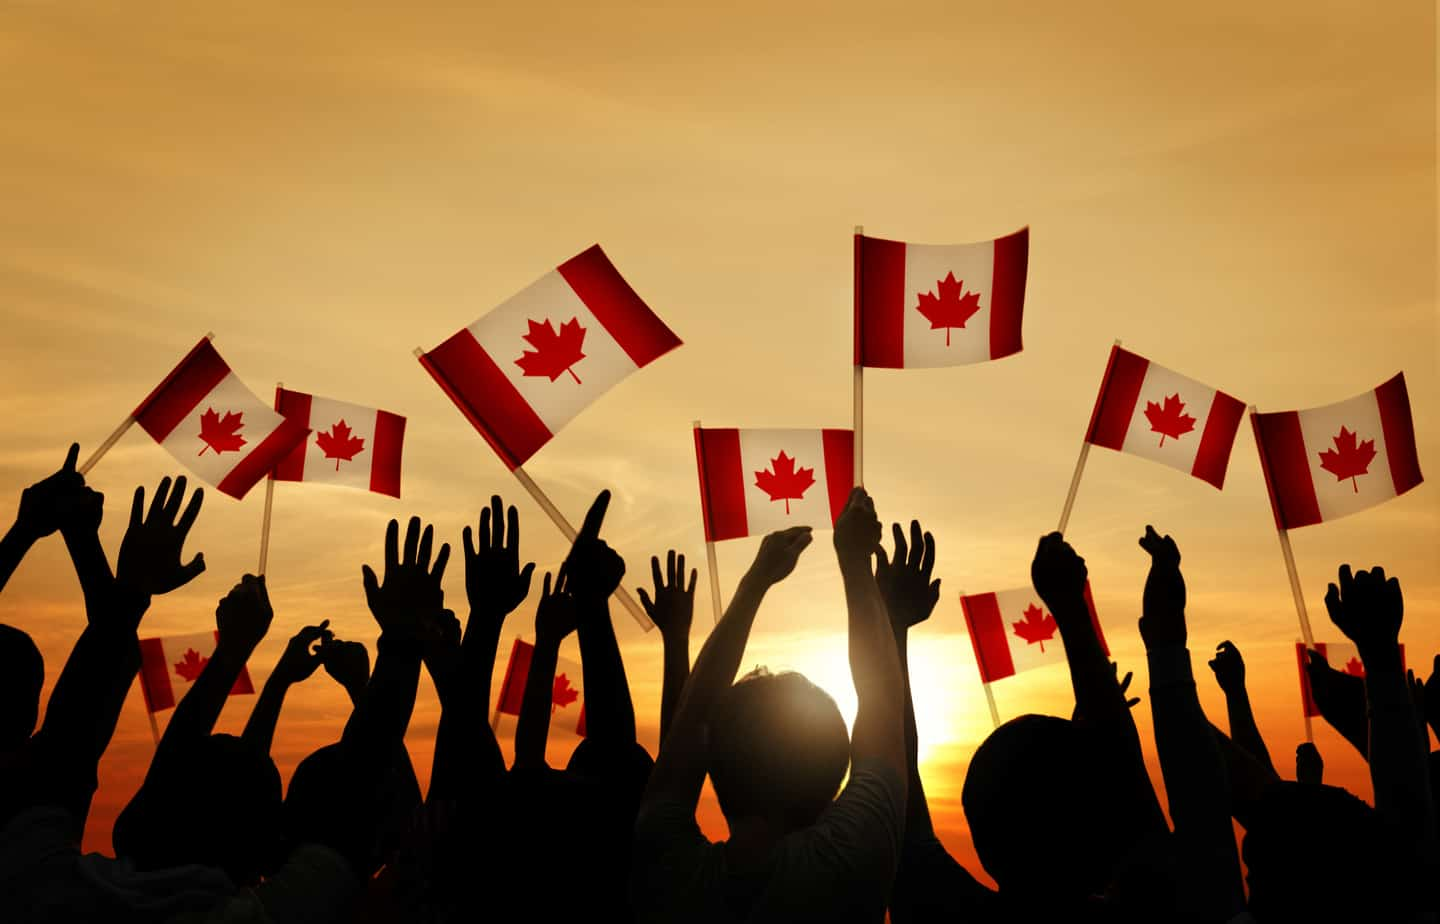 Group of People Waving the Flag of Canada